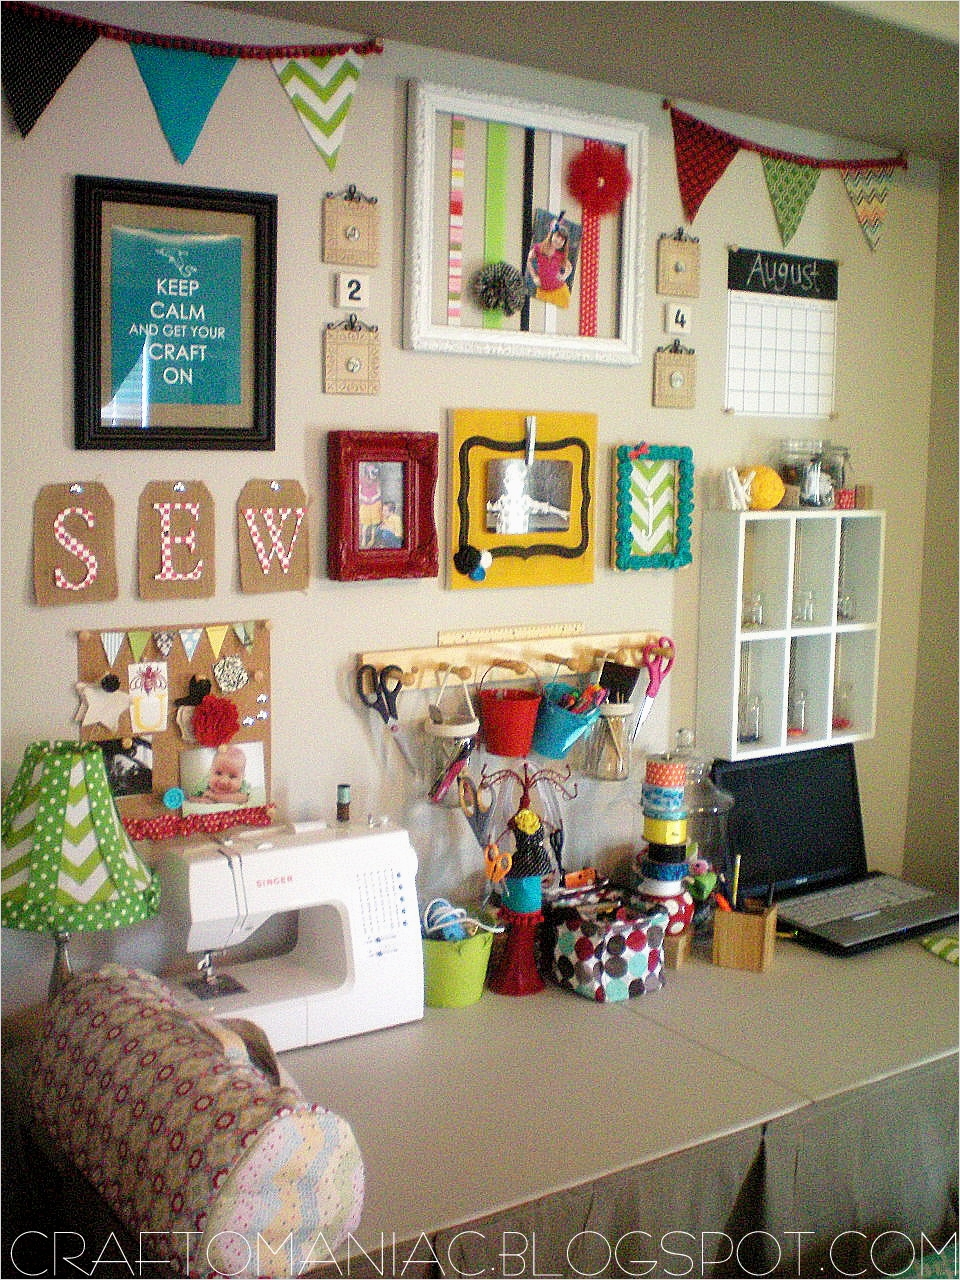 40 Creative Sewing Room Storage Ideas 27 Craft Room organization 6